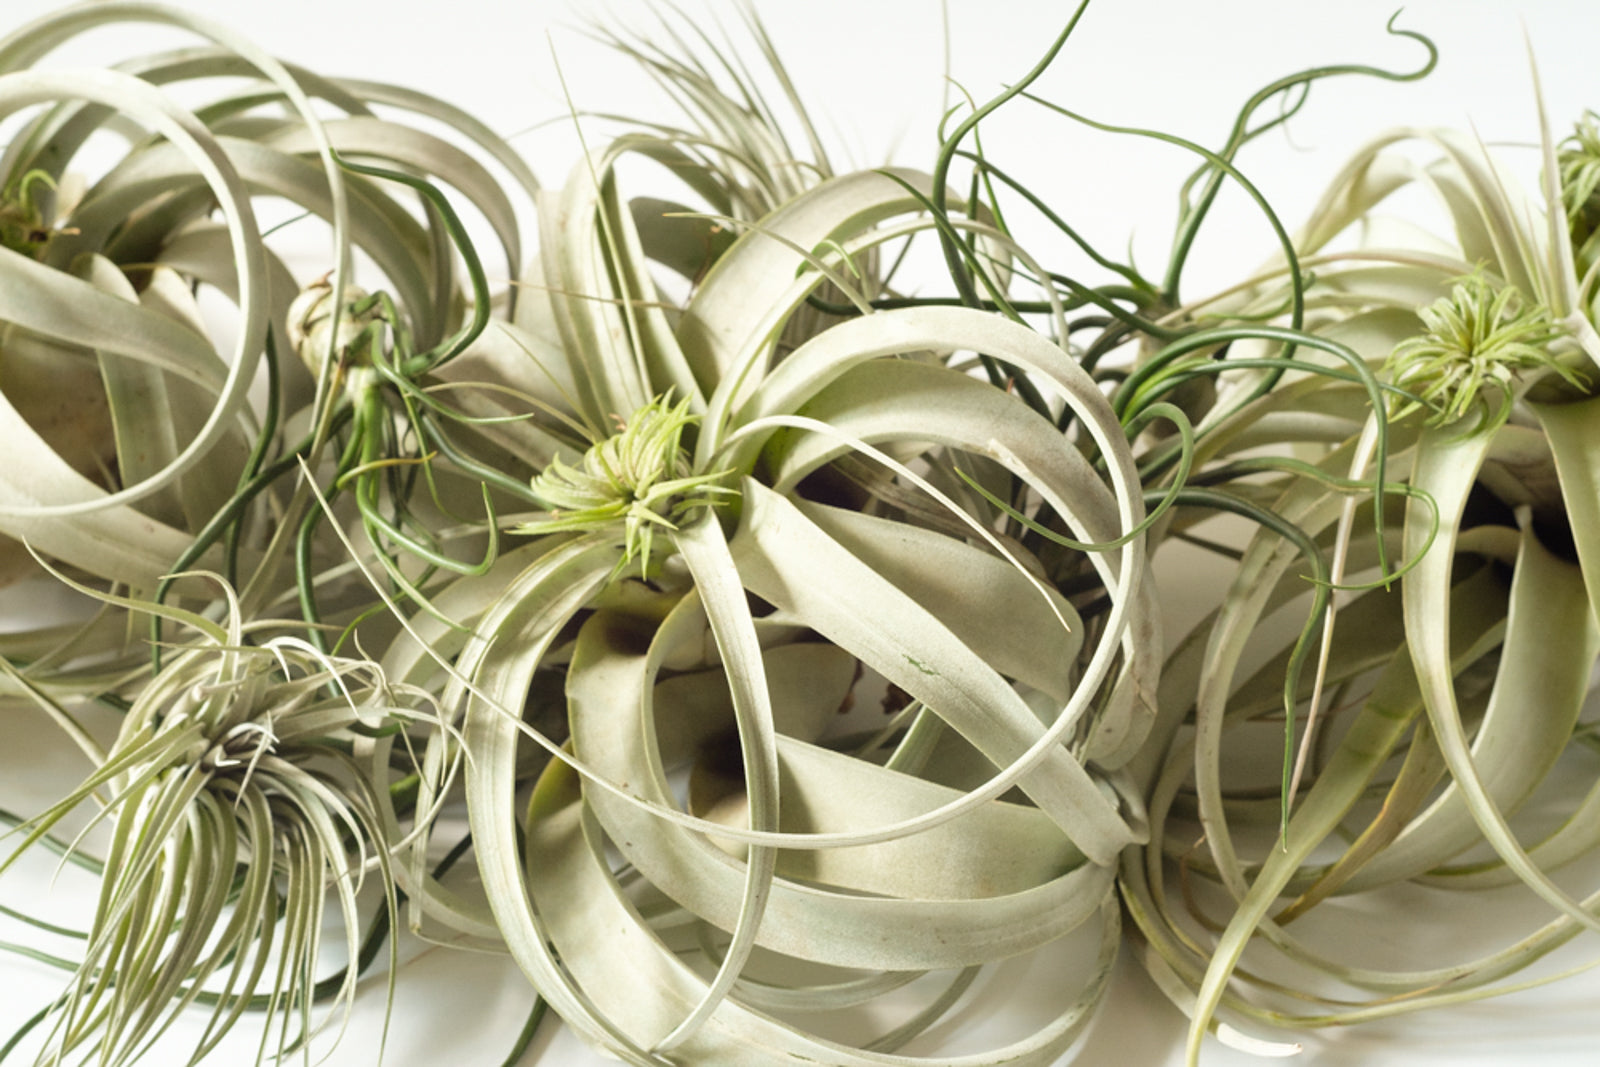 Elan Flowers air plant collection